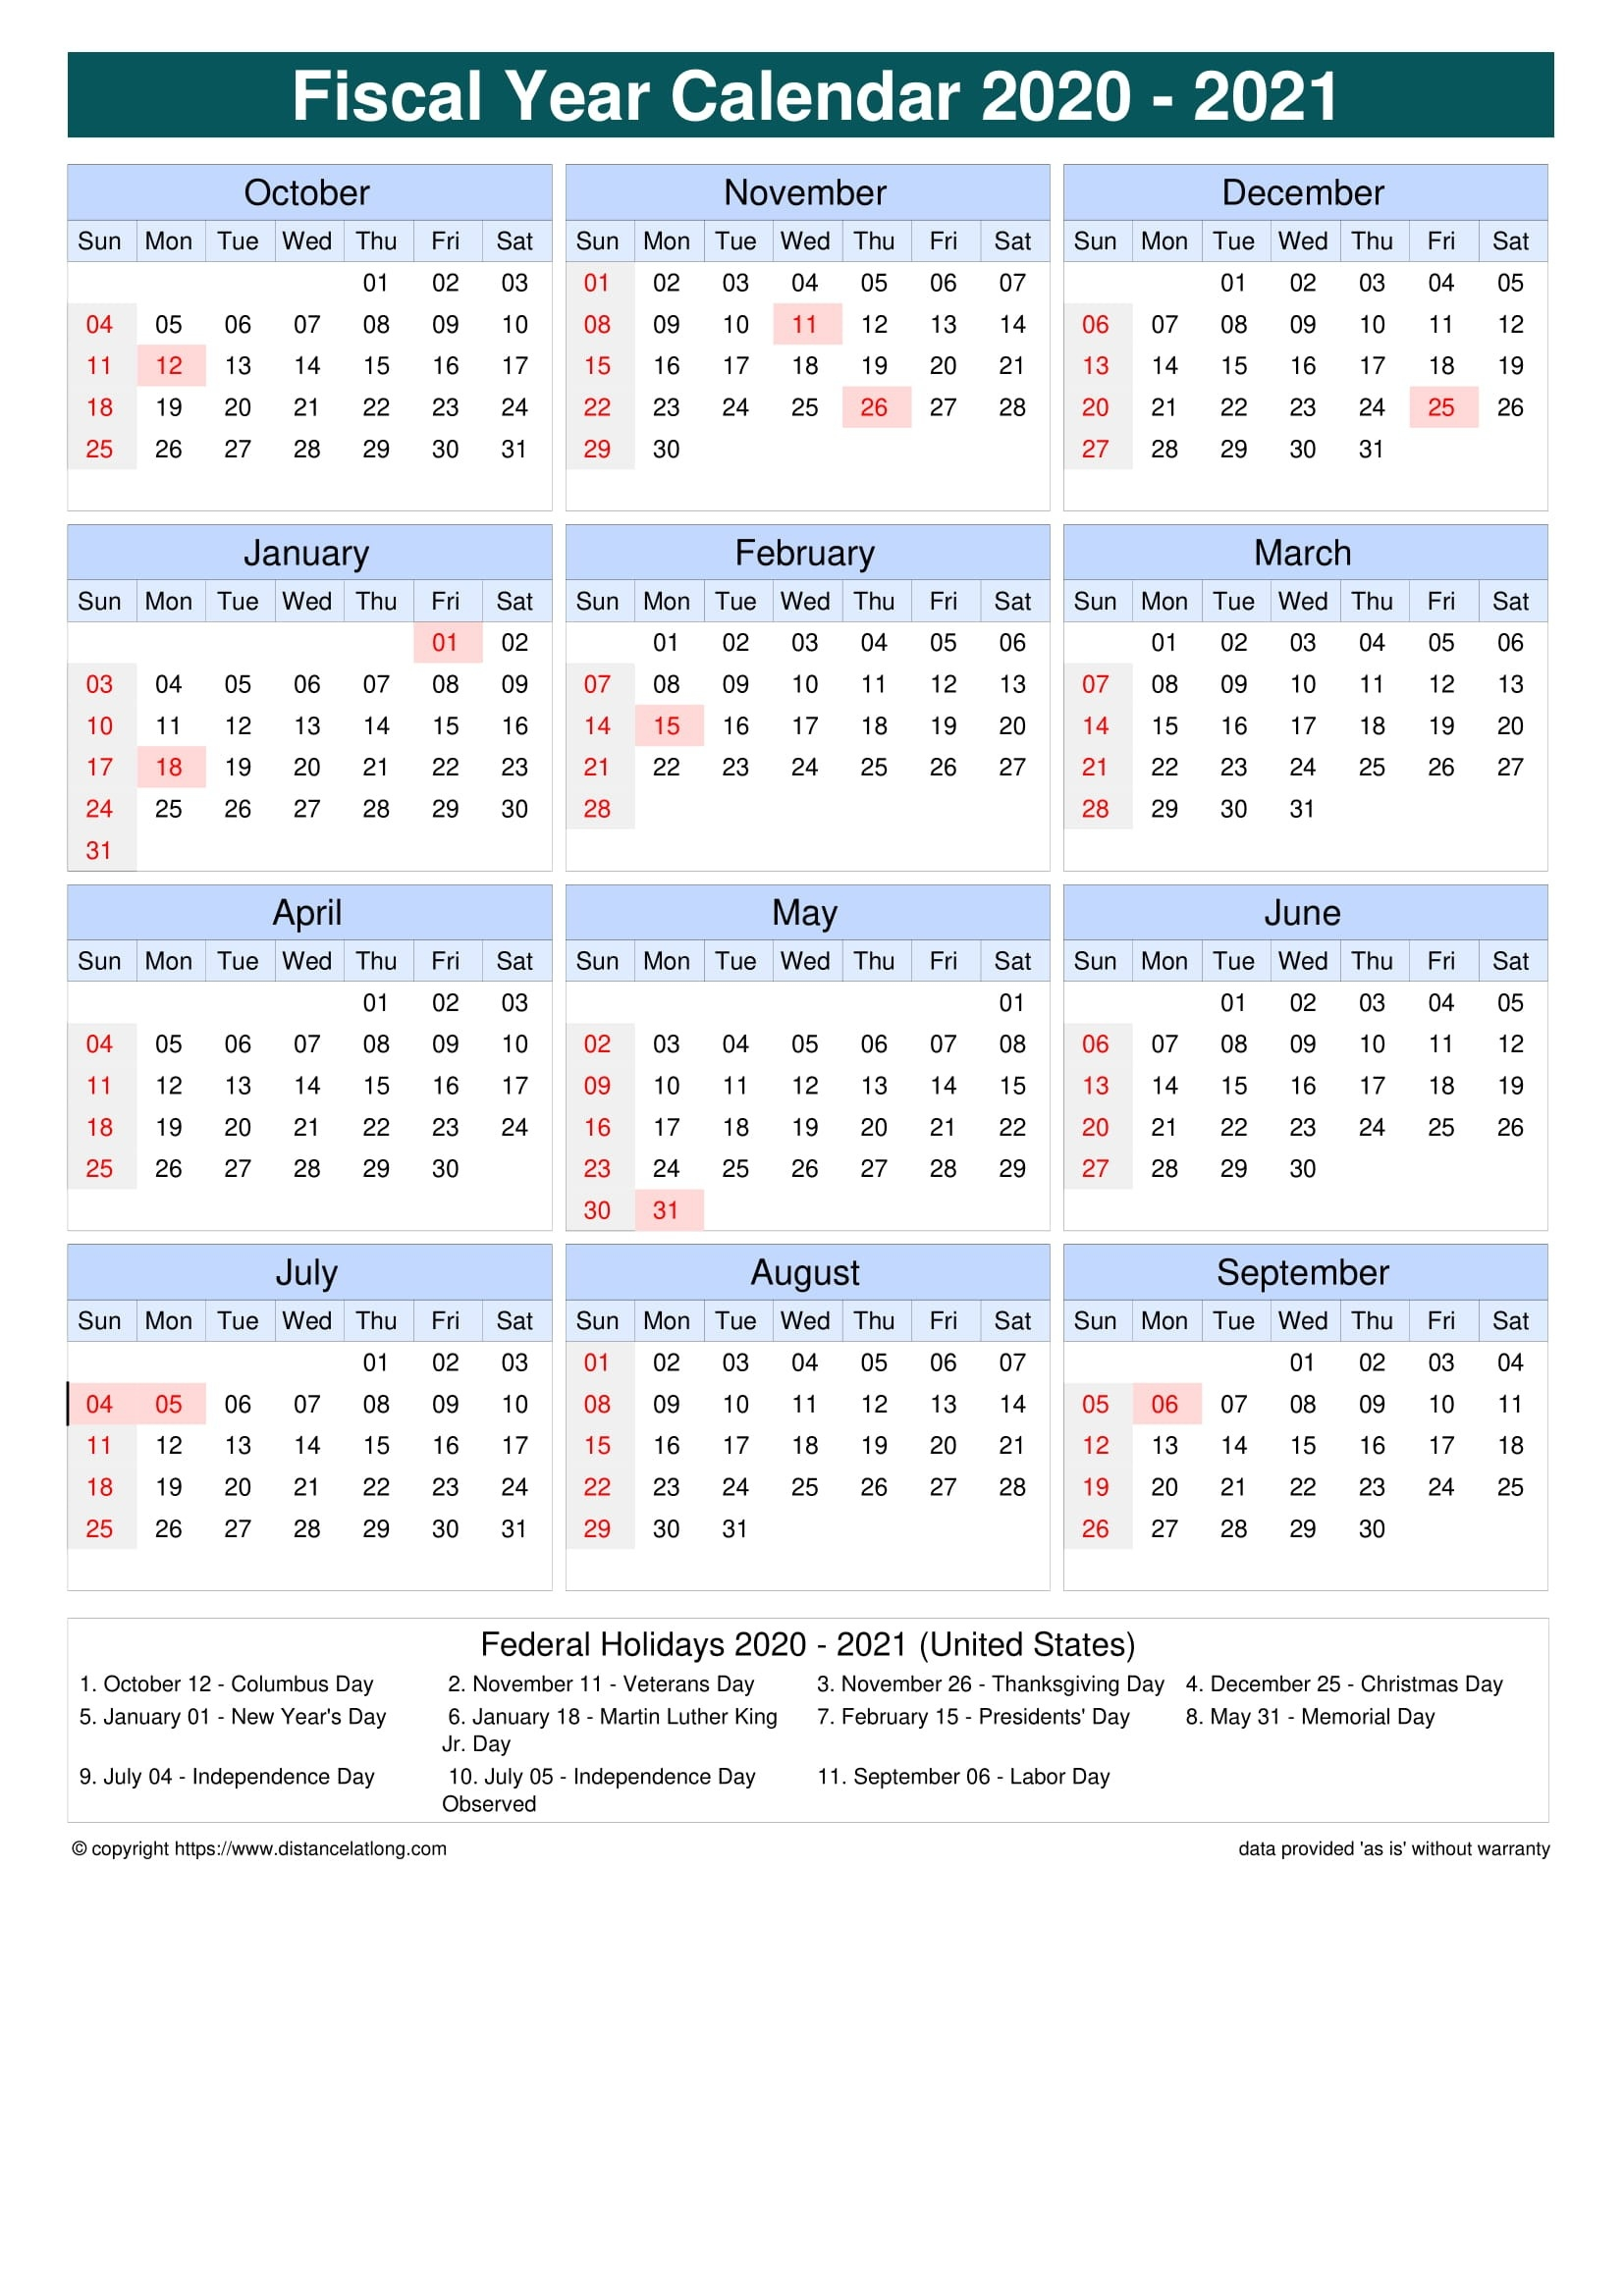 United States Holiday Calendar 2021 Jpg Templates  Financial Ytd Calender 2021 Australia